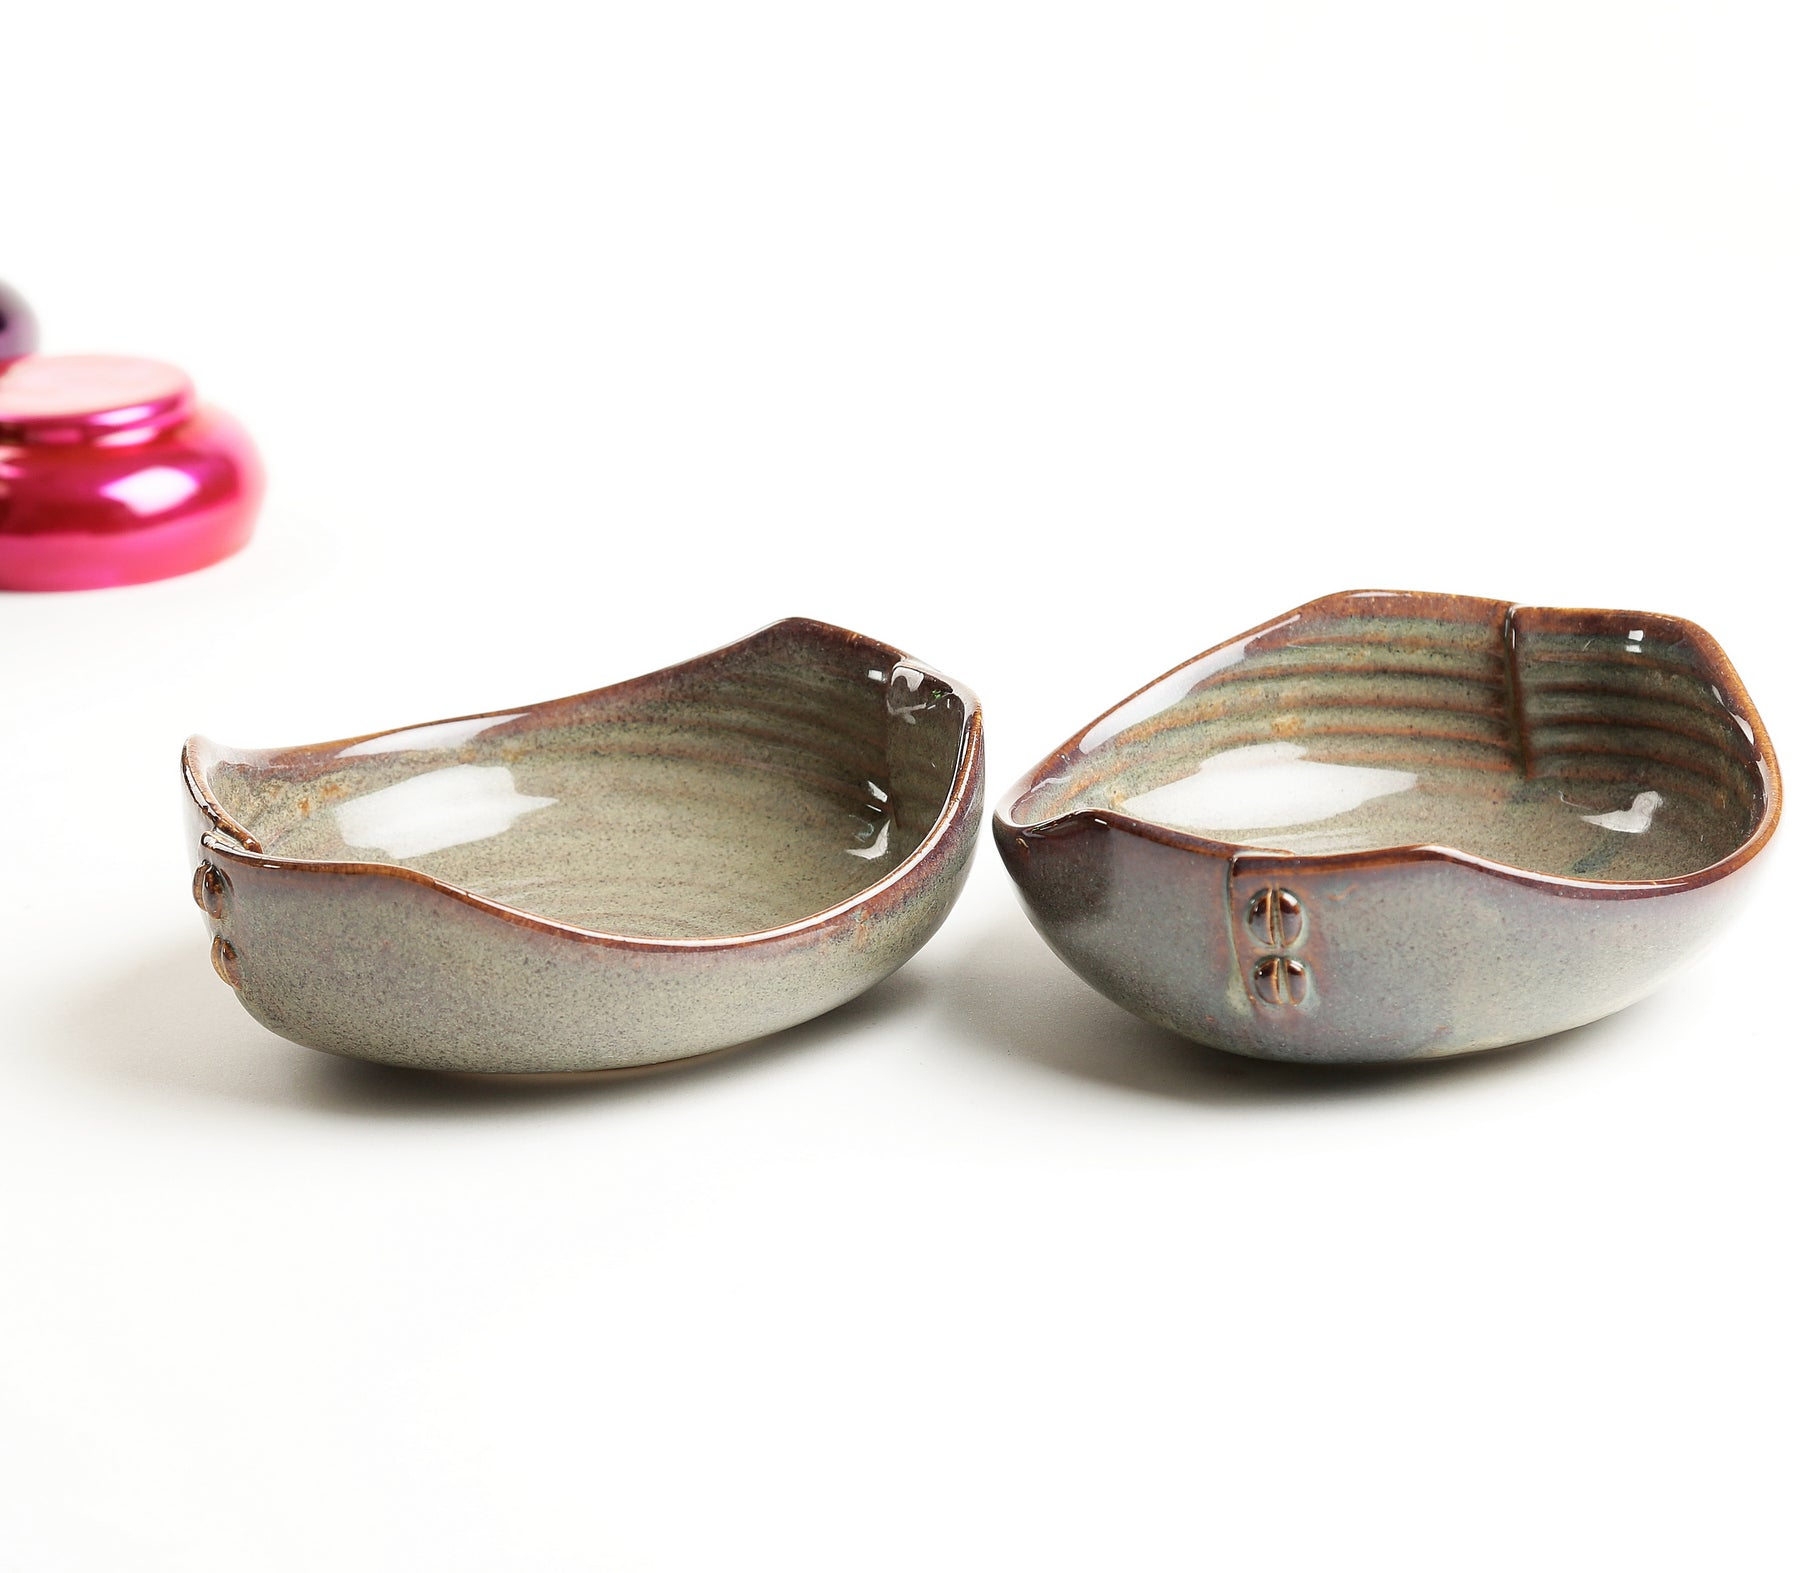 Sand Brown Studio Ciac Bowls - Set of 2